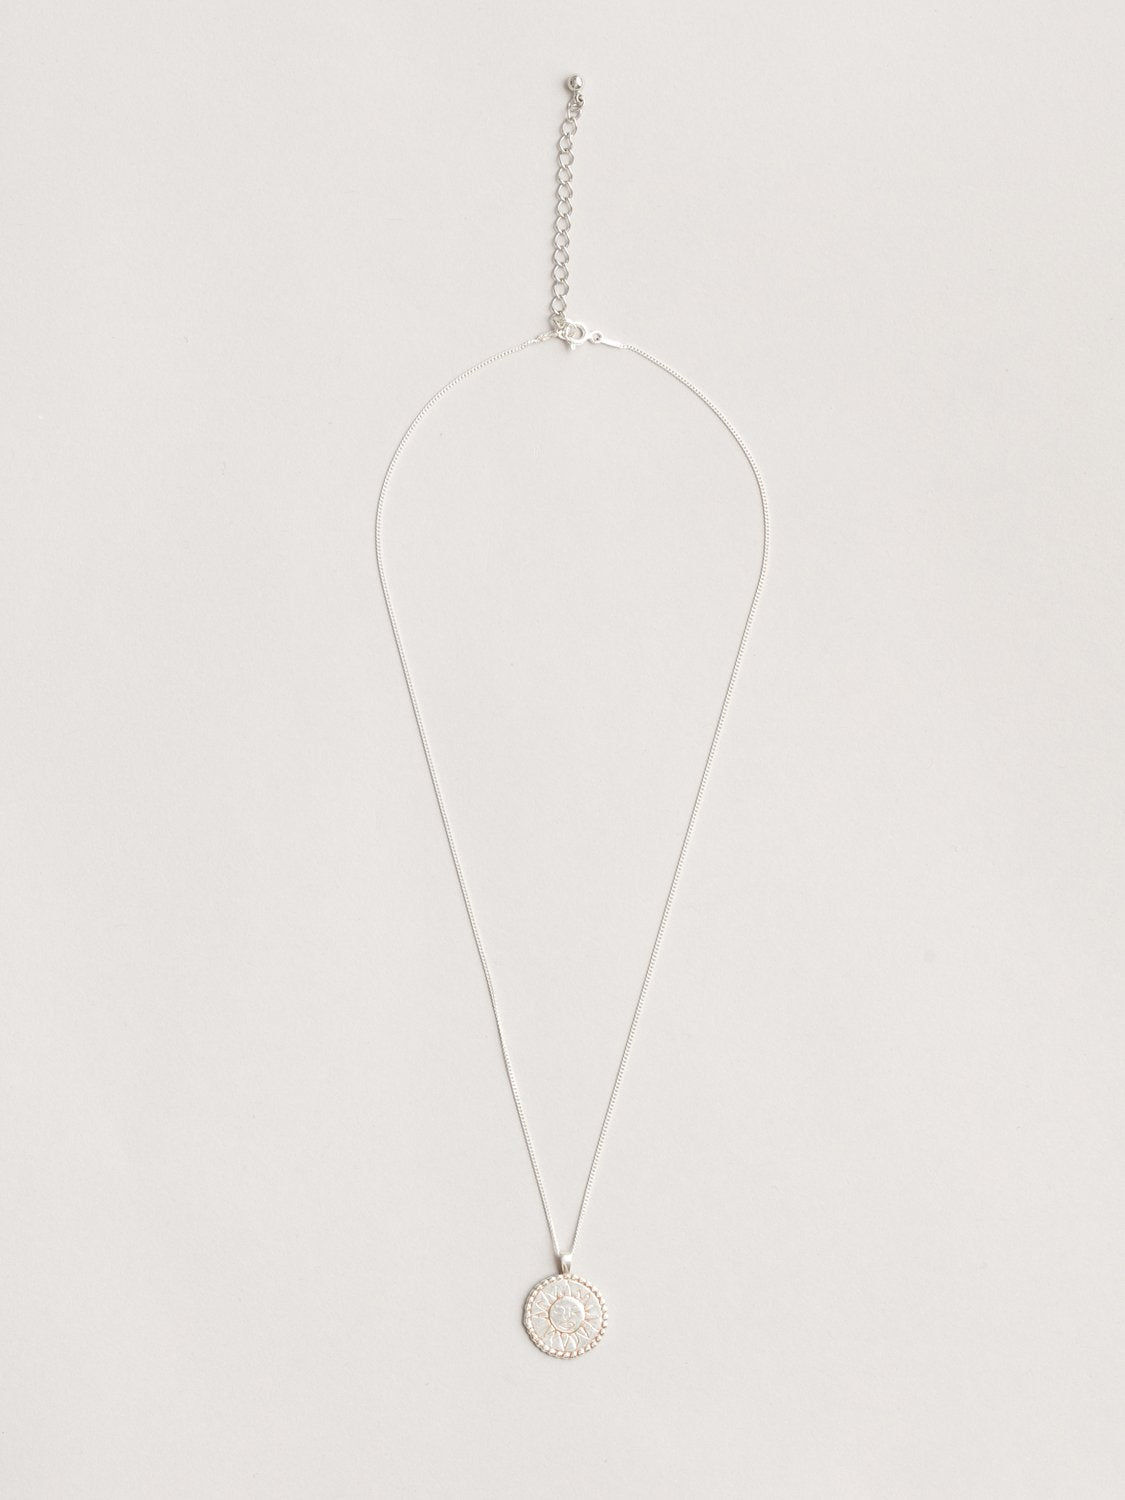 Lumen Necklace in Silver